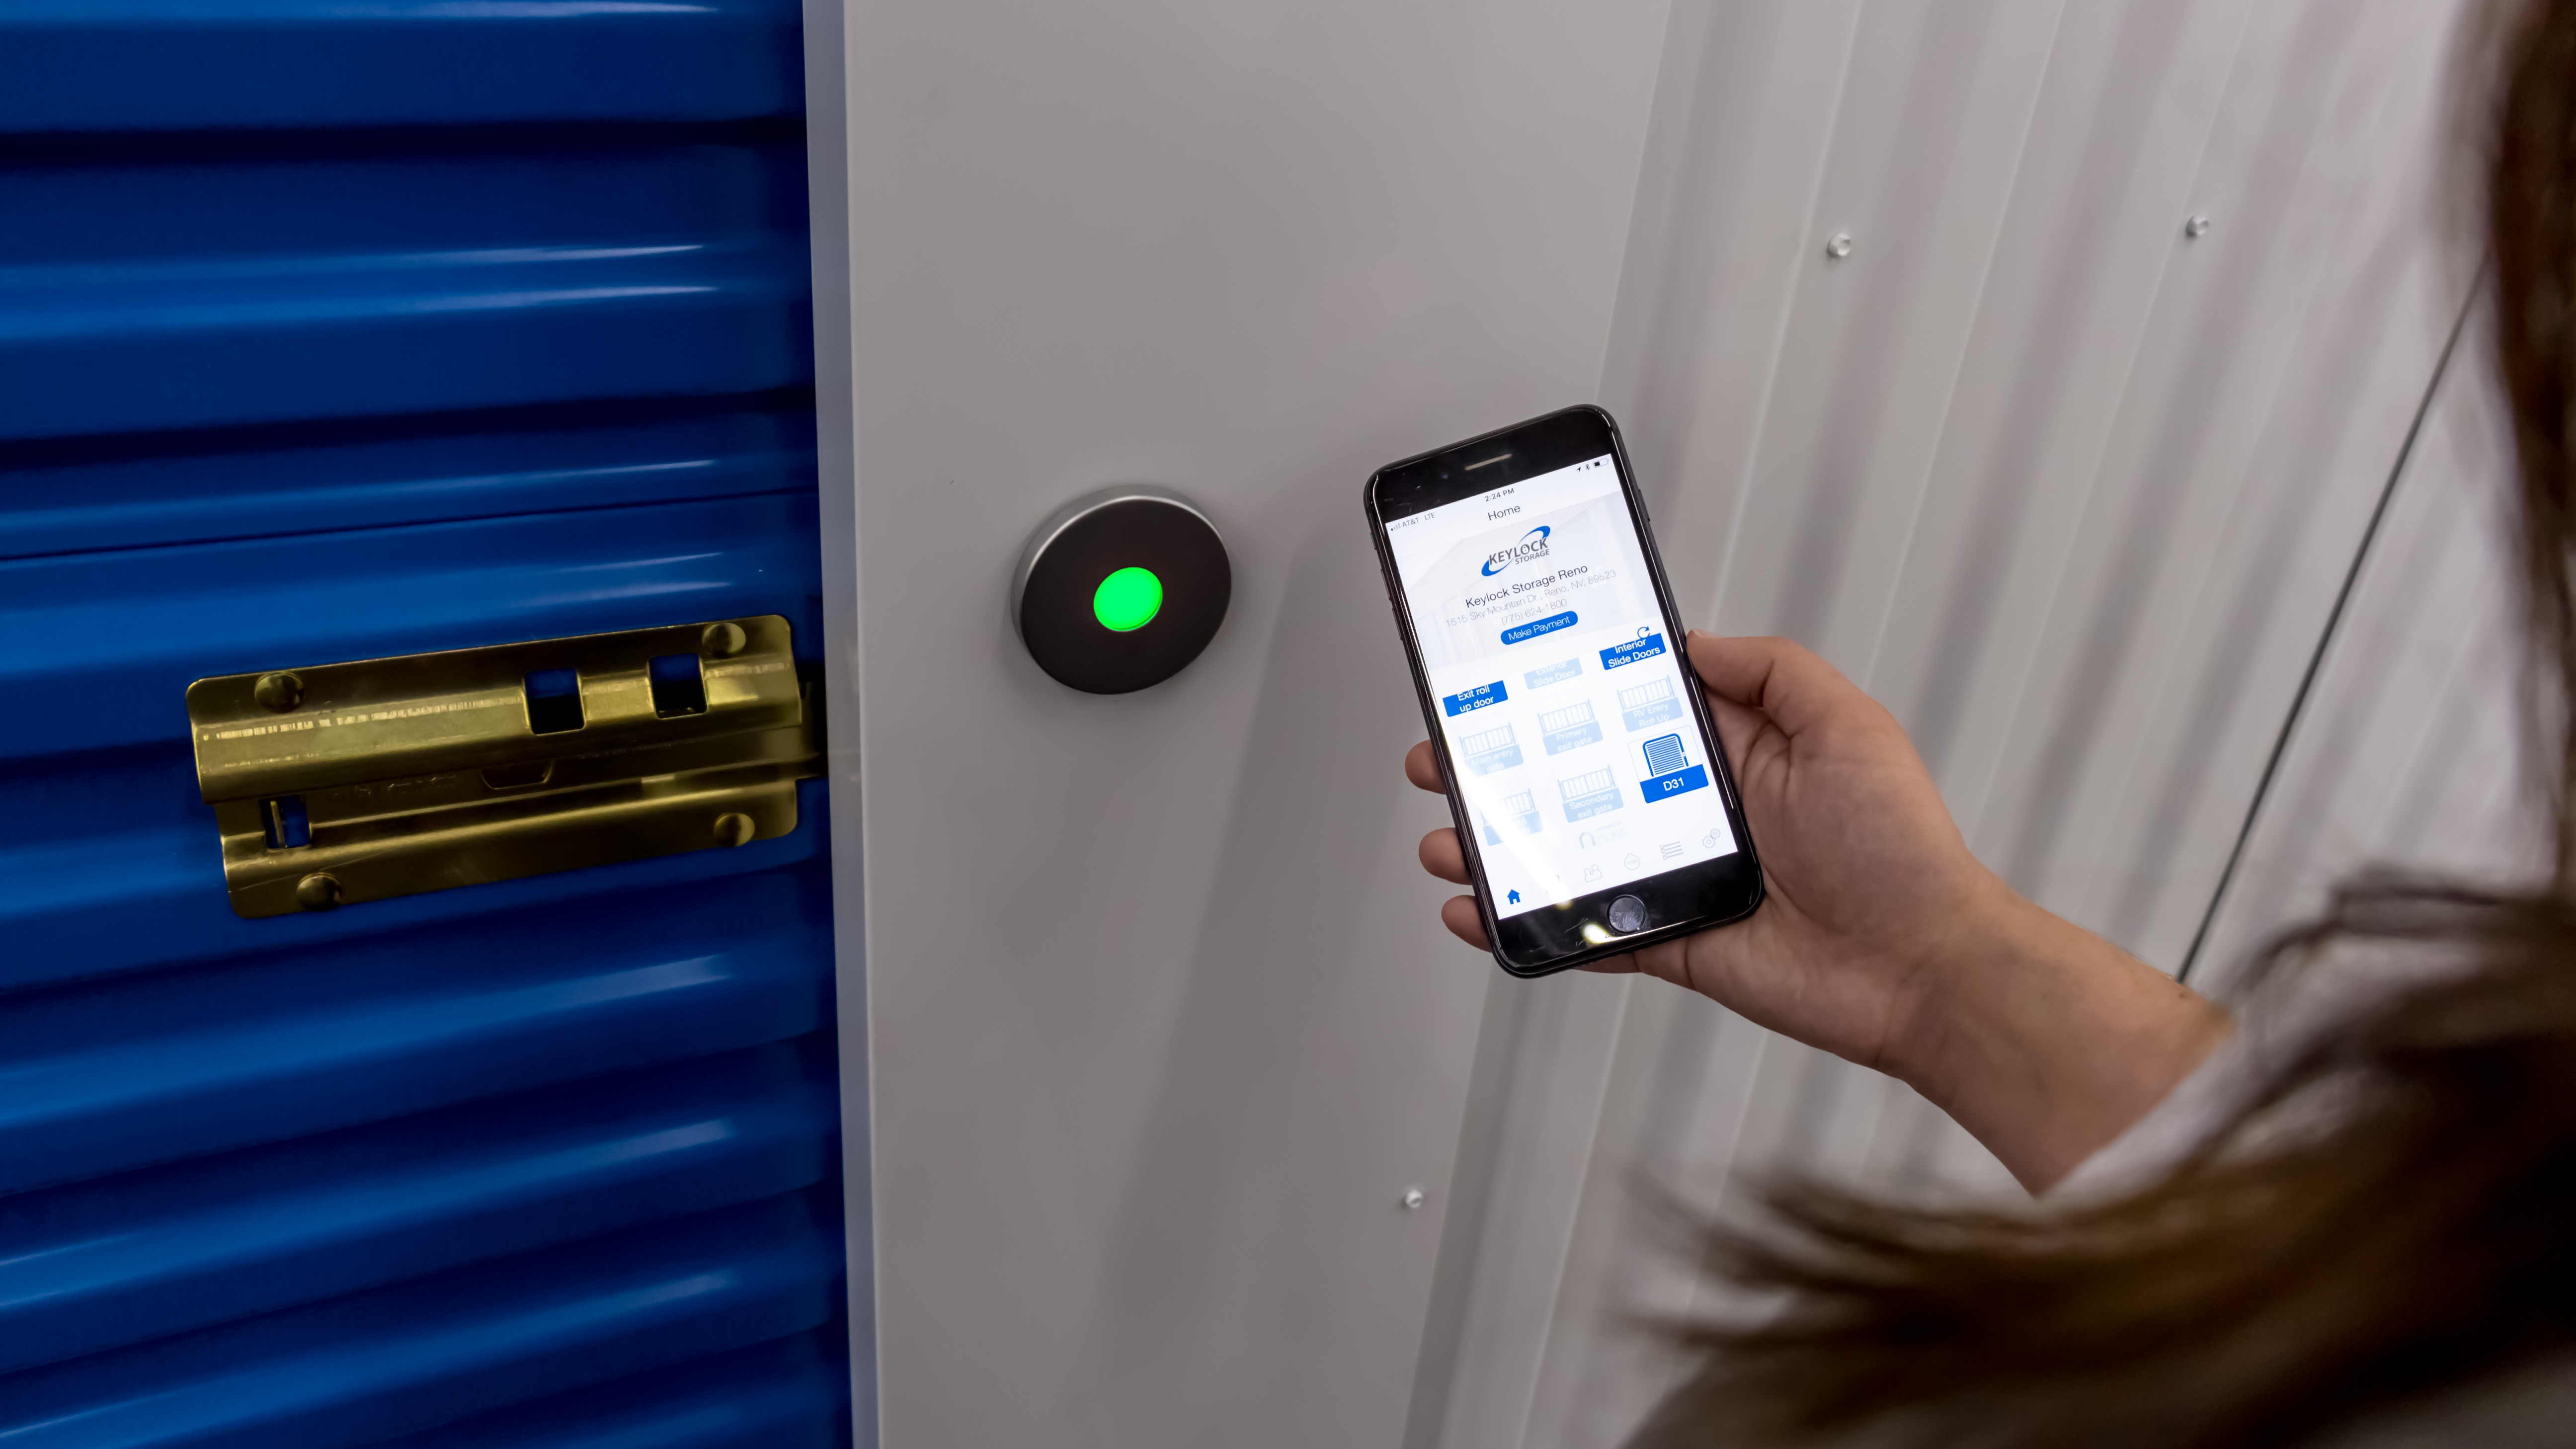 Smart entry technology being used to open self-storage door